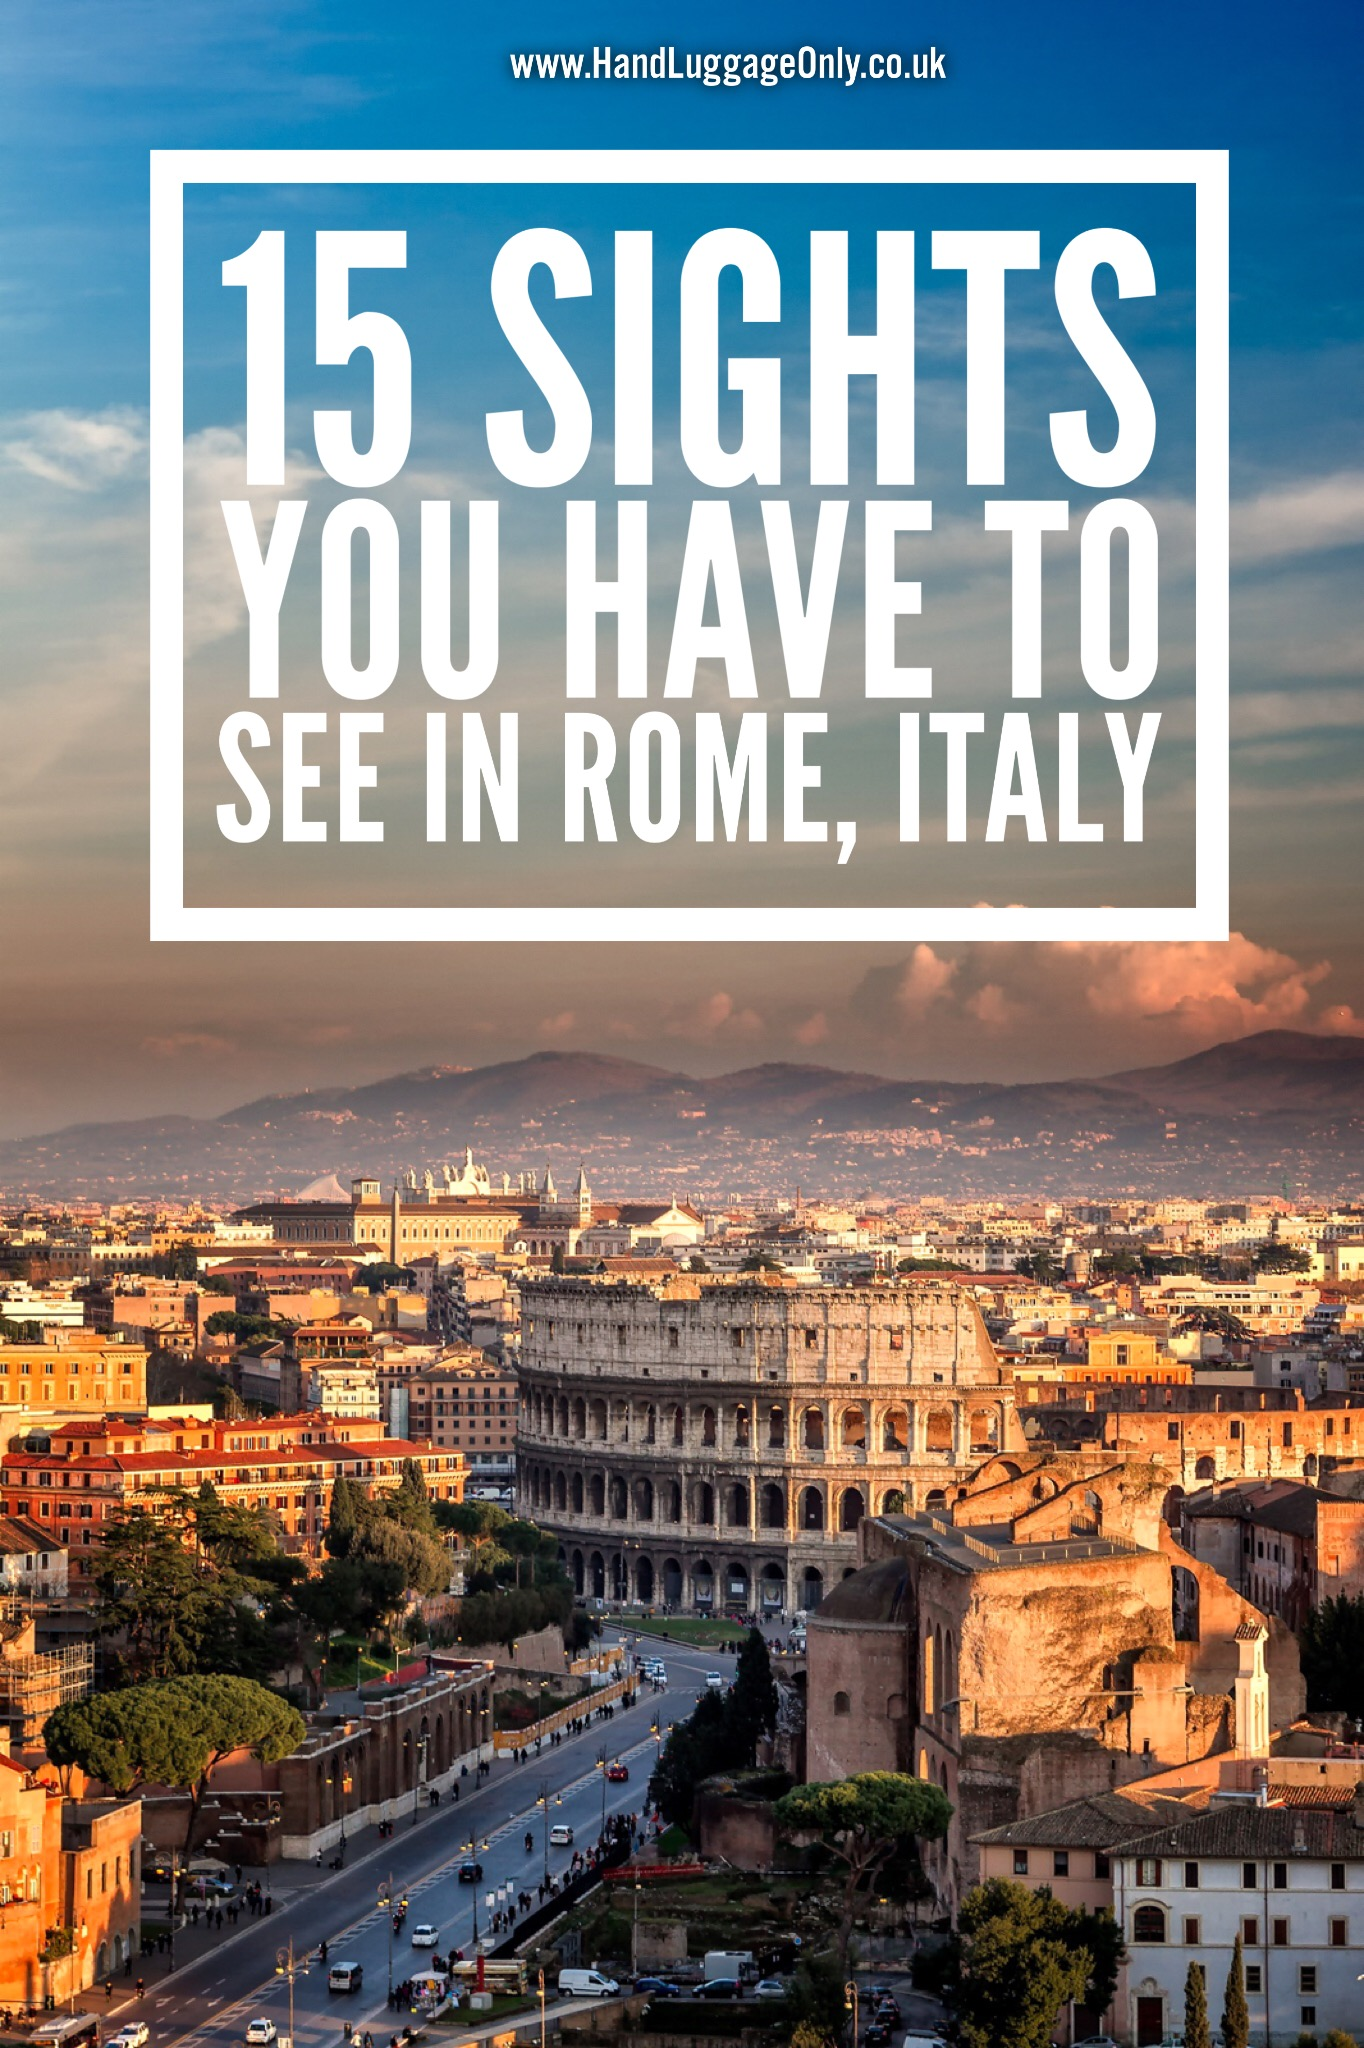 15 Sights You Have To See In Rome, Italy (1)